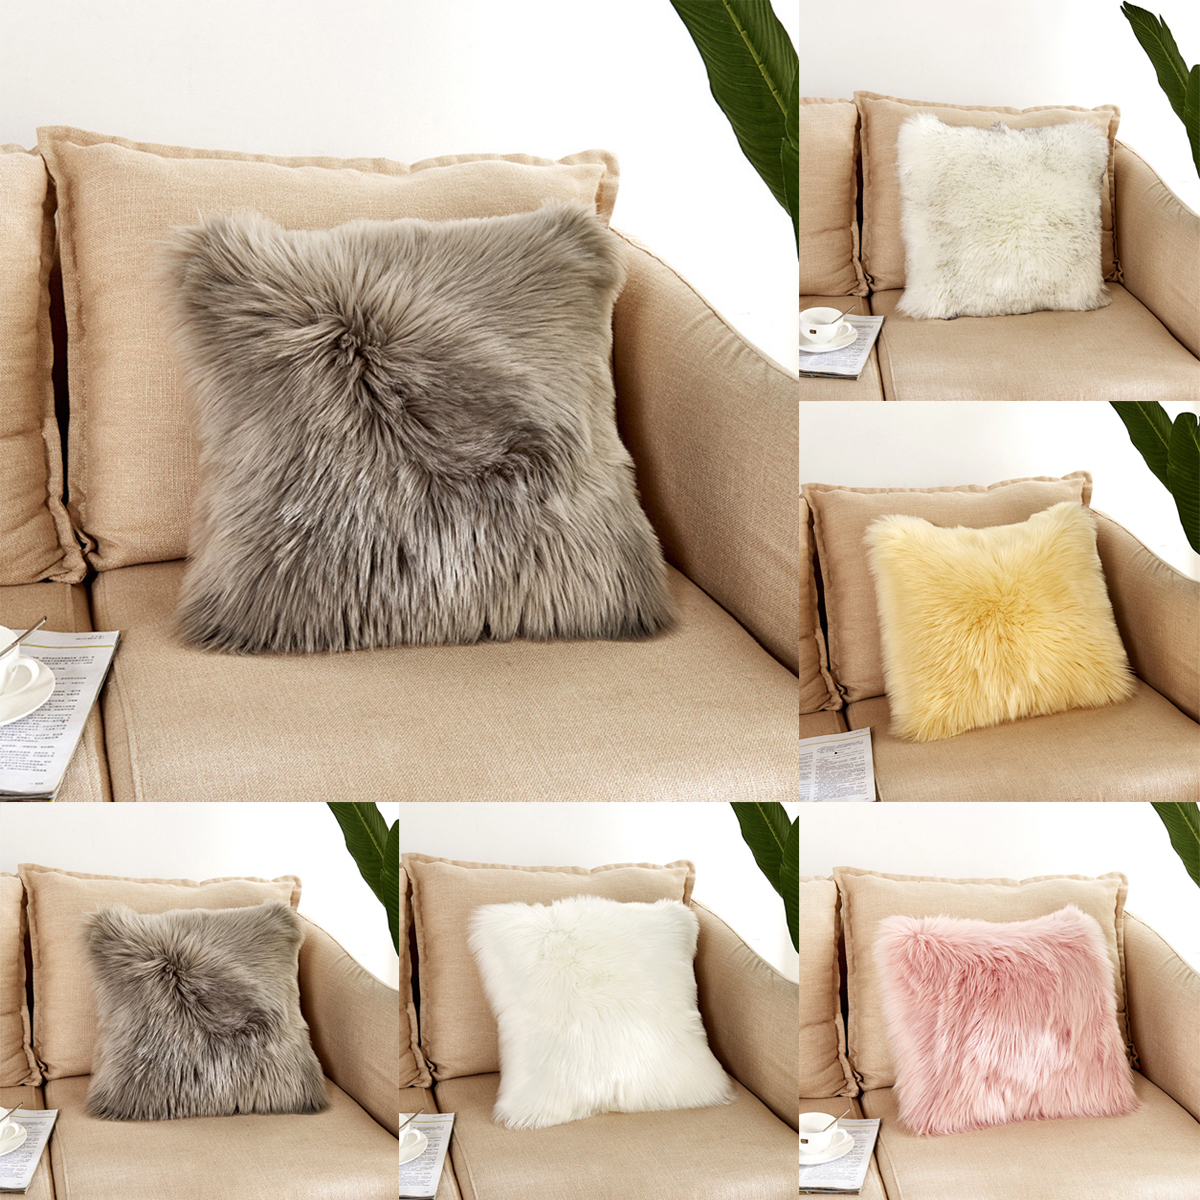 40*40cm Fluffy Plush Soft Sofa Chair Pillow Case Cushion Cover